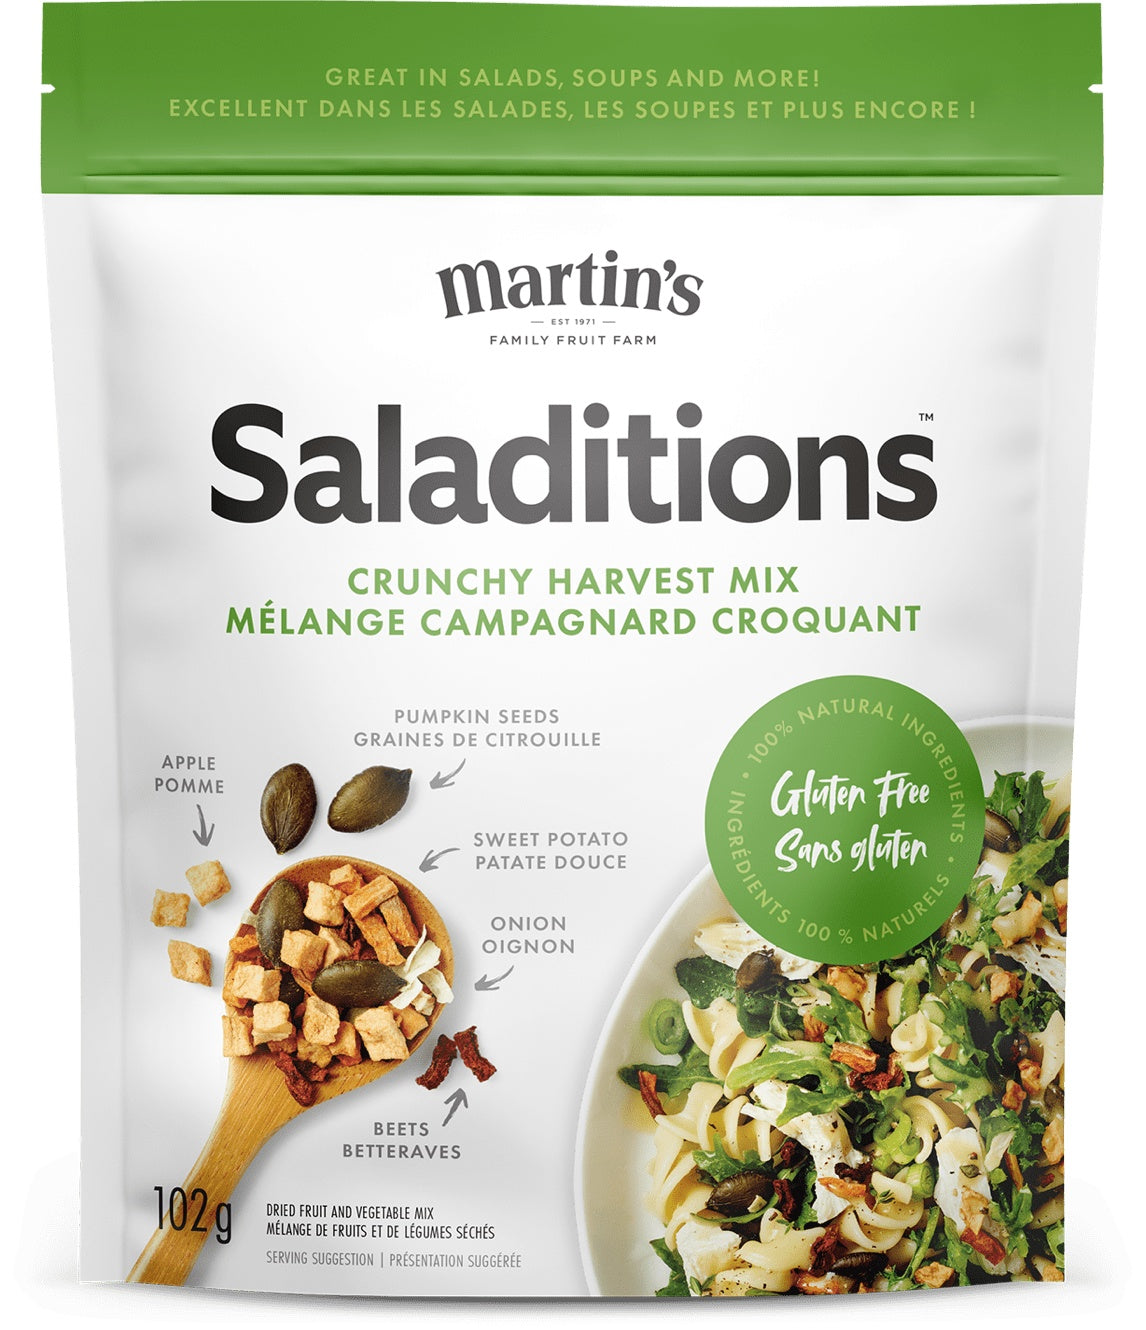 Food & Drink - Martin's - Saladitions, Crunchy Harvest Mix, 102g